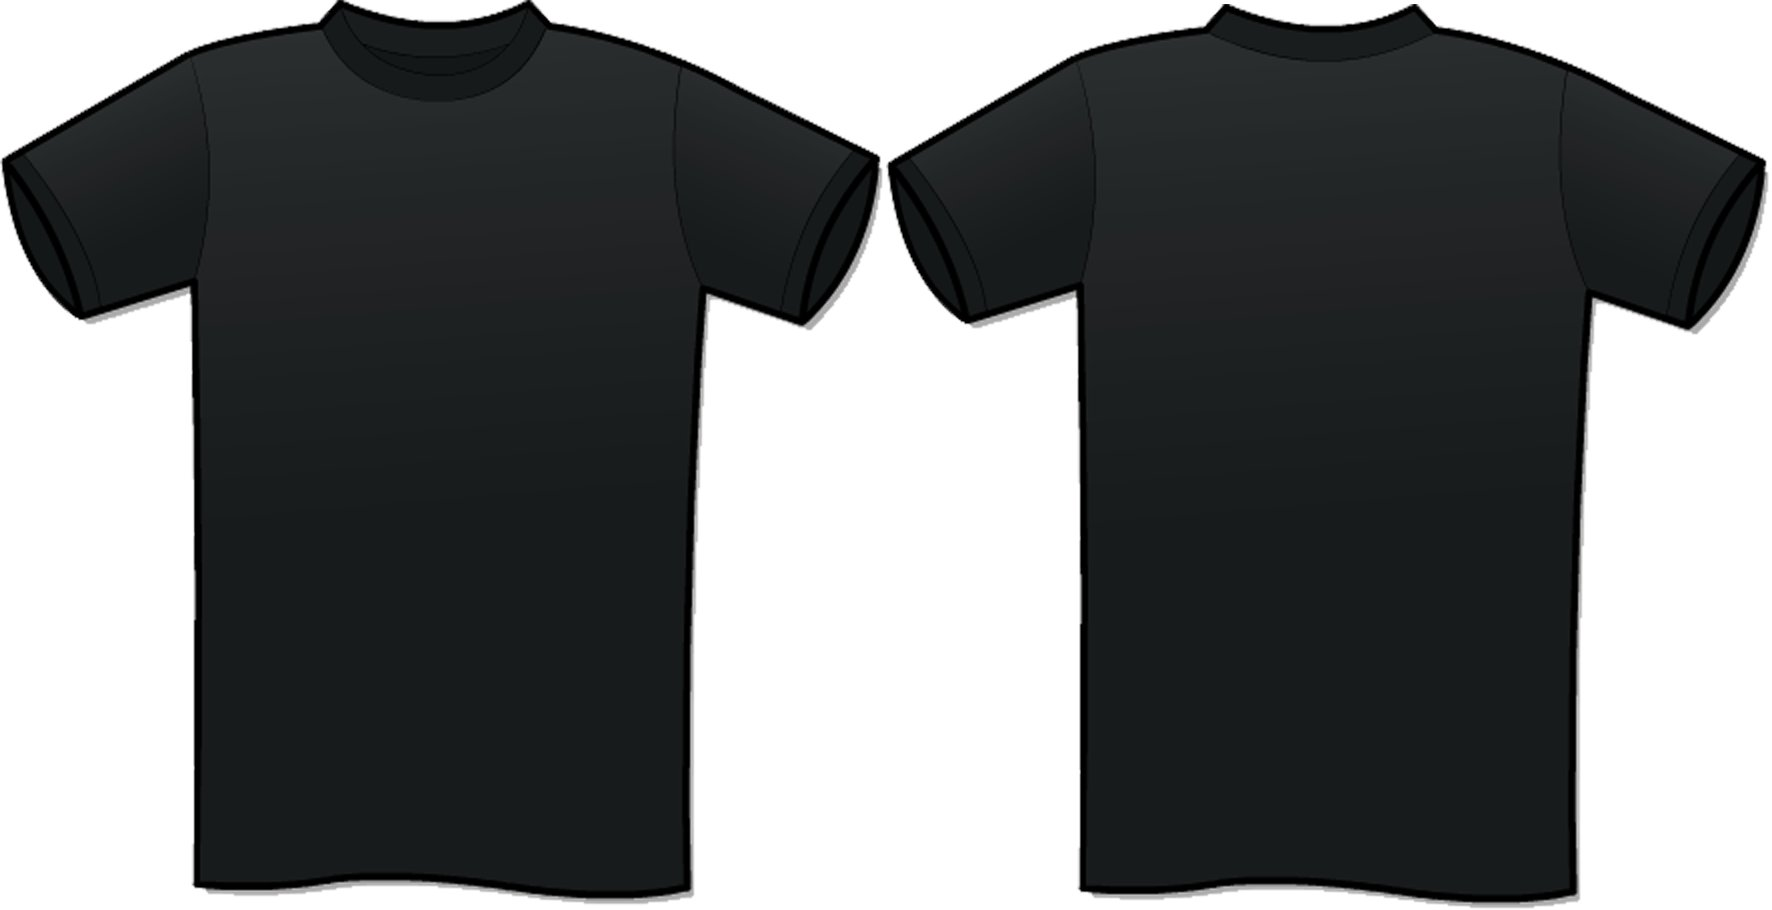 Black t shirt design template -  Design Template Psd Images White T Shirt Download